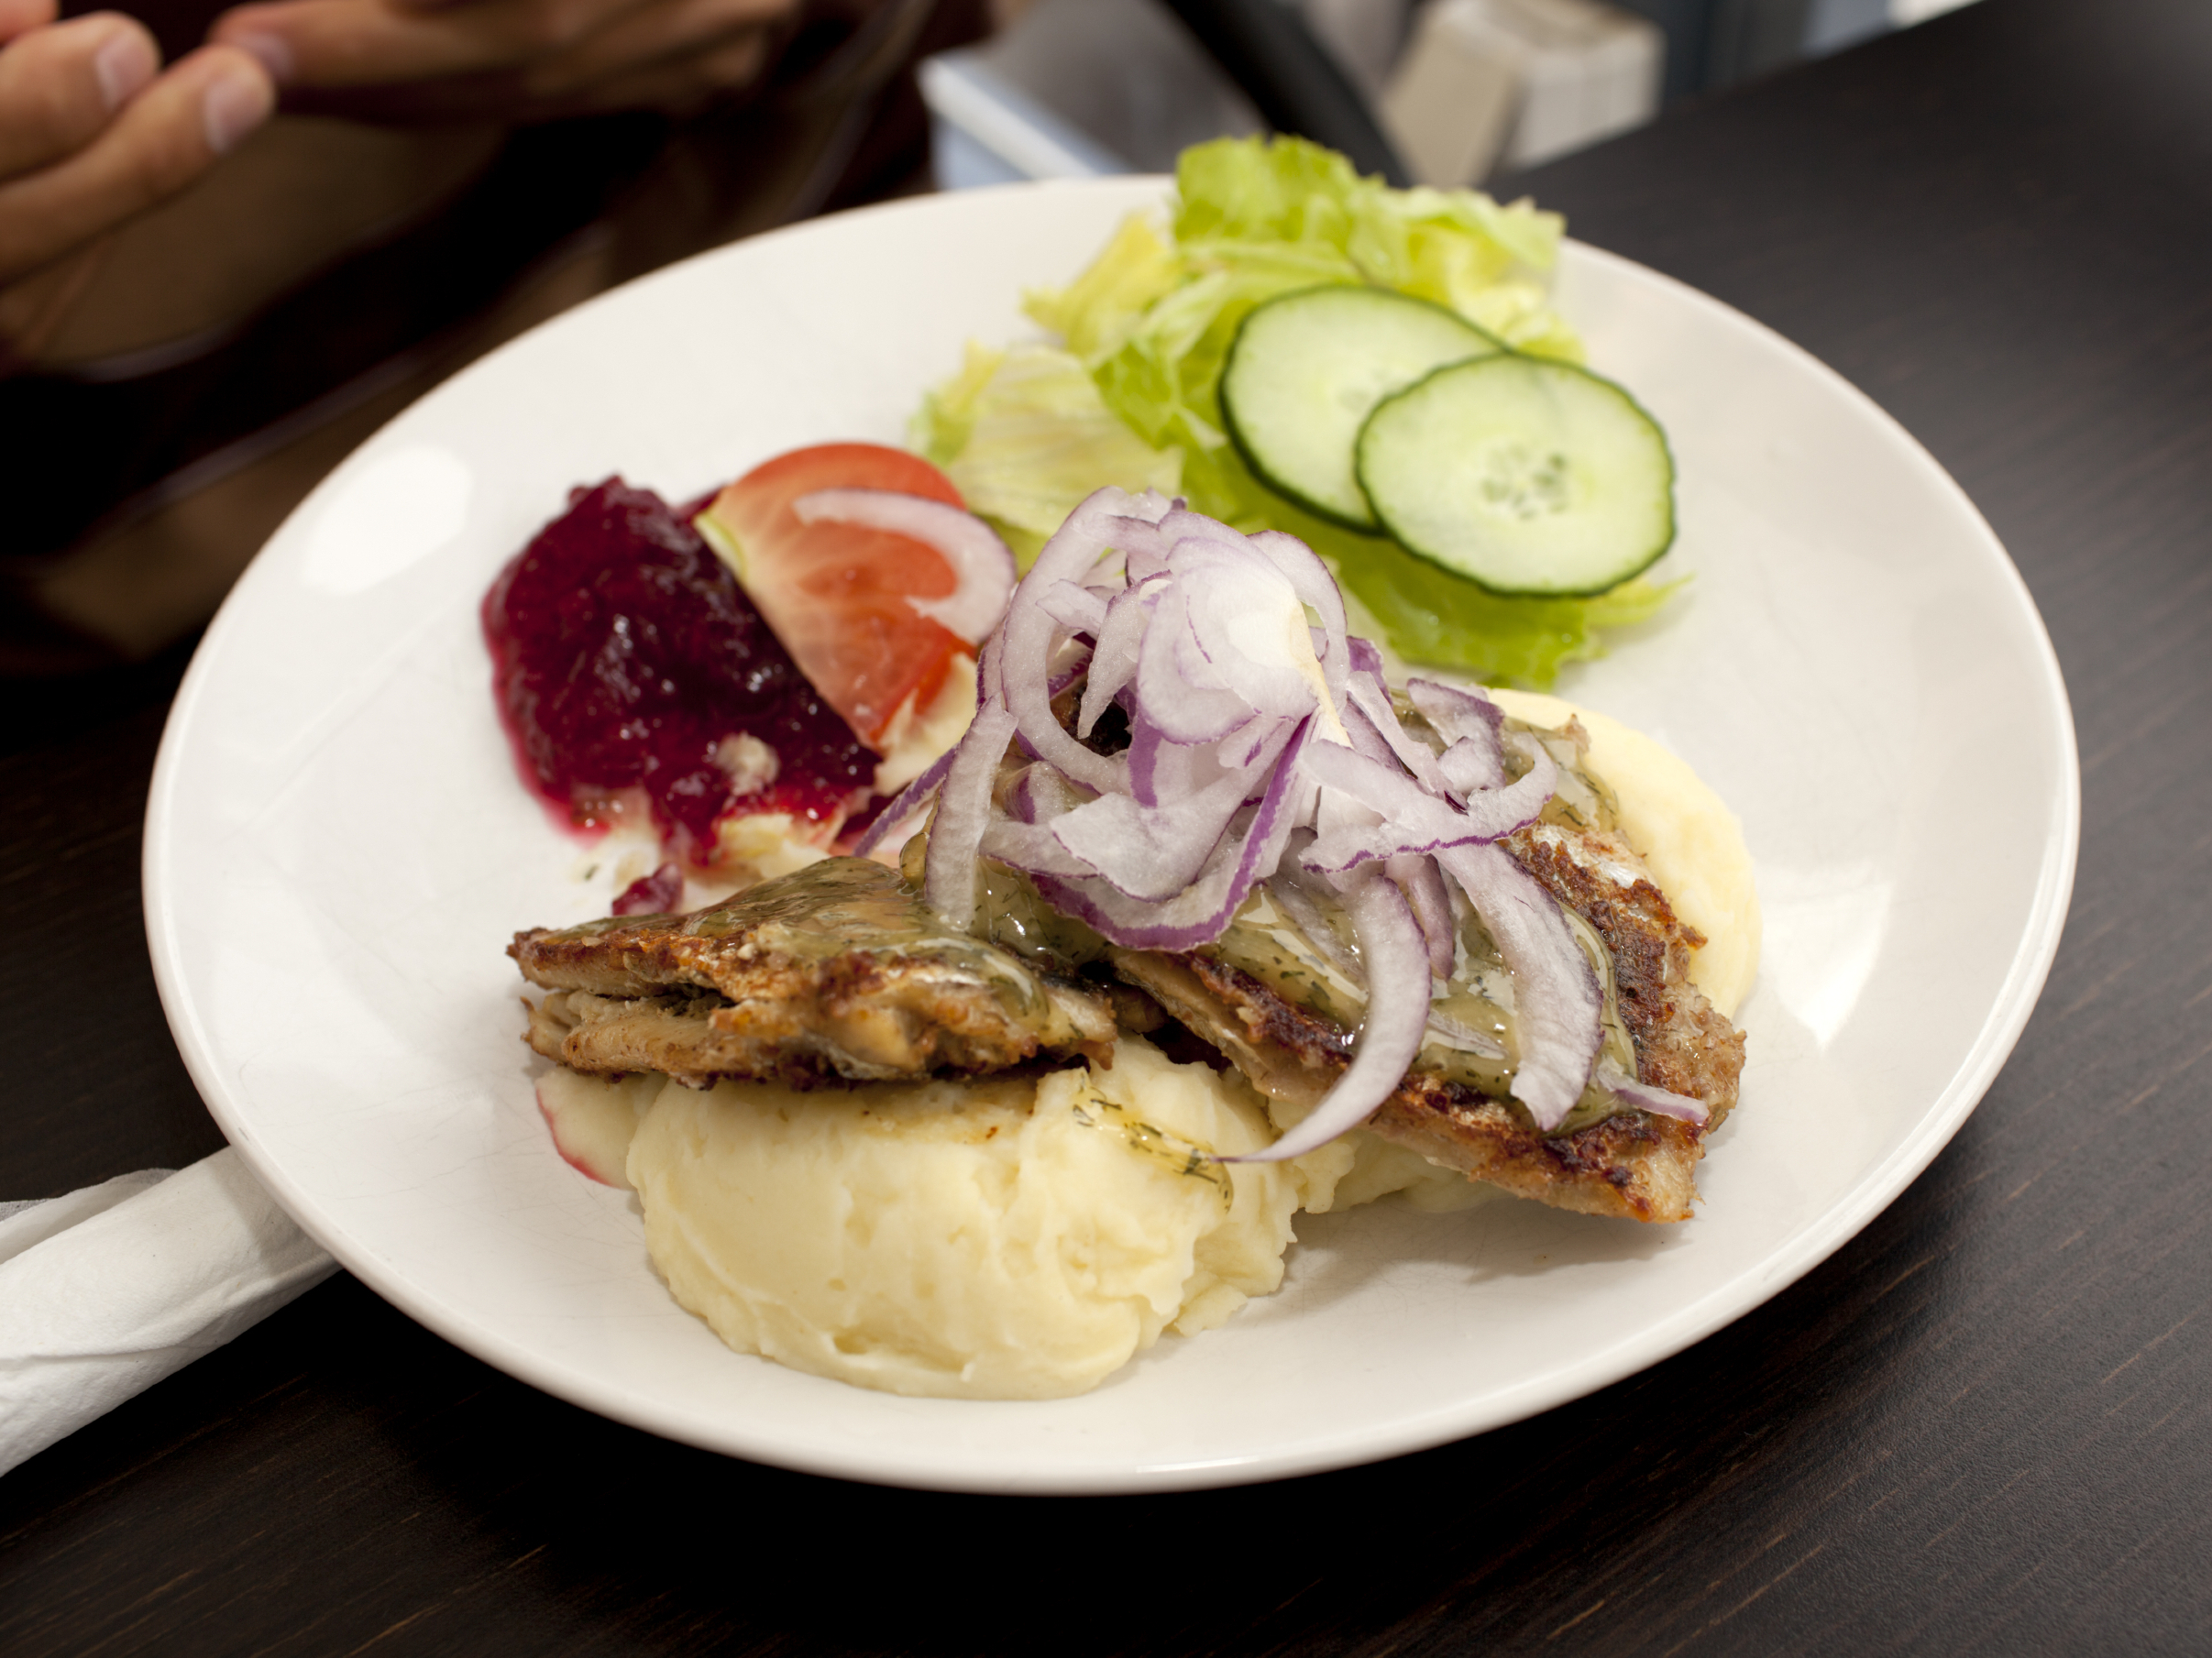 Nordic Diet Could Be Local Alternative To Mediterranean Diet